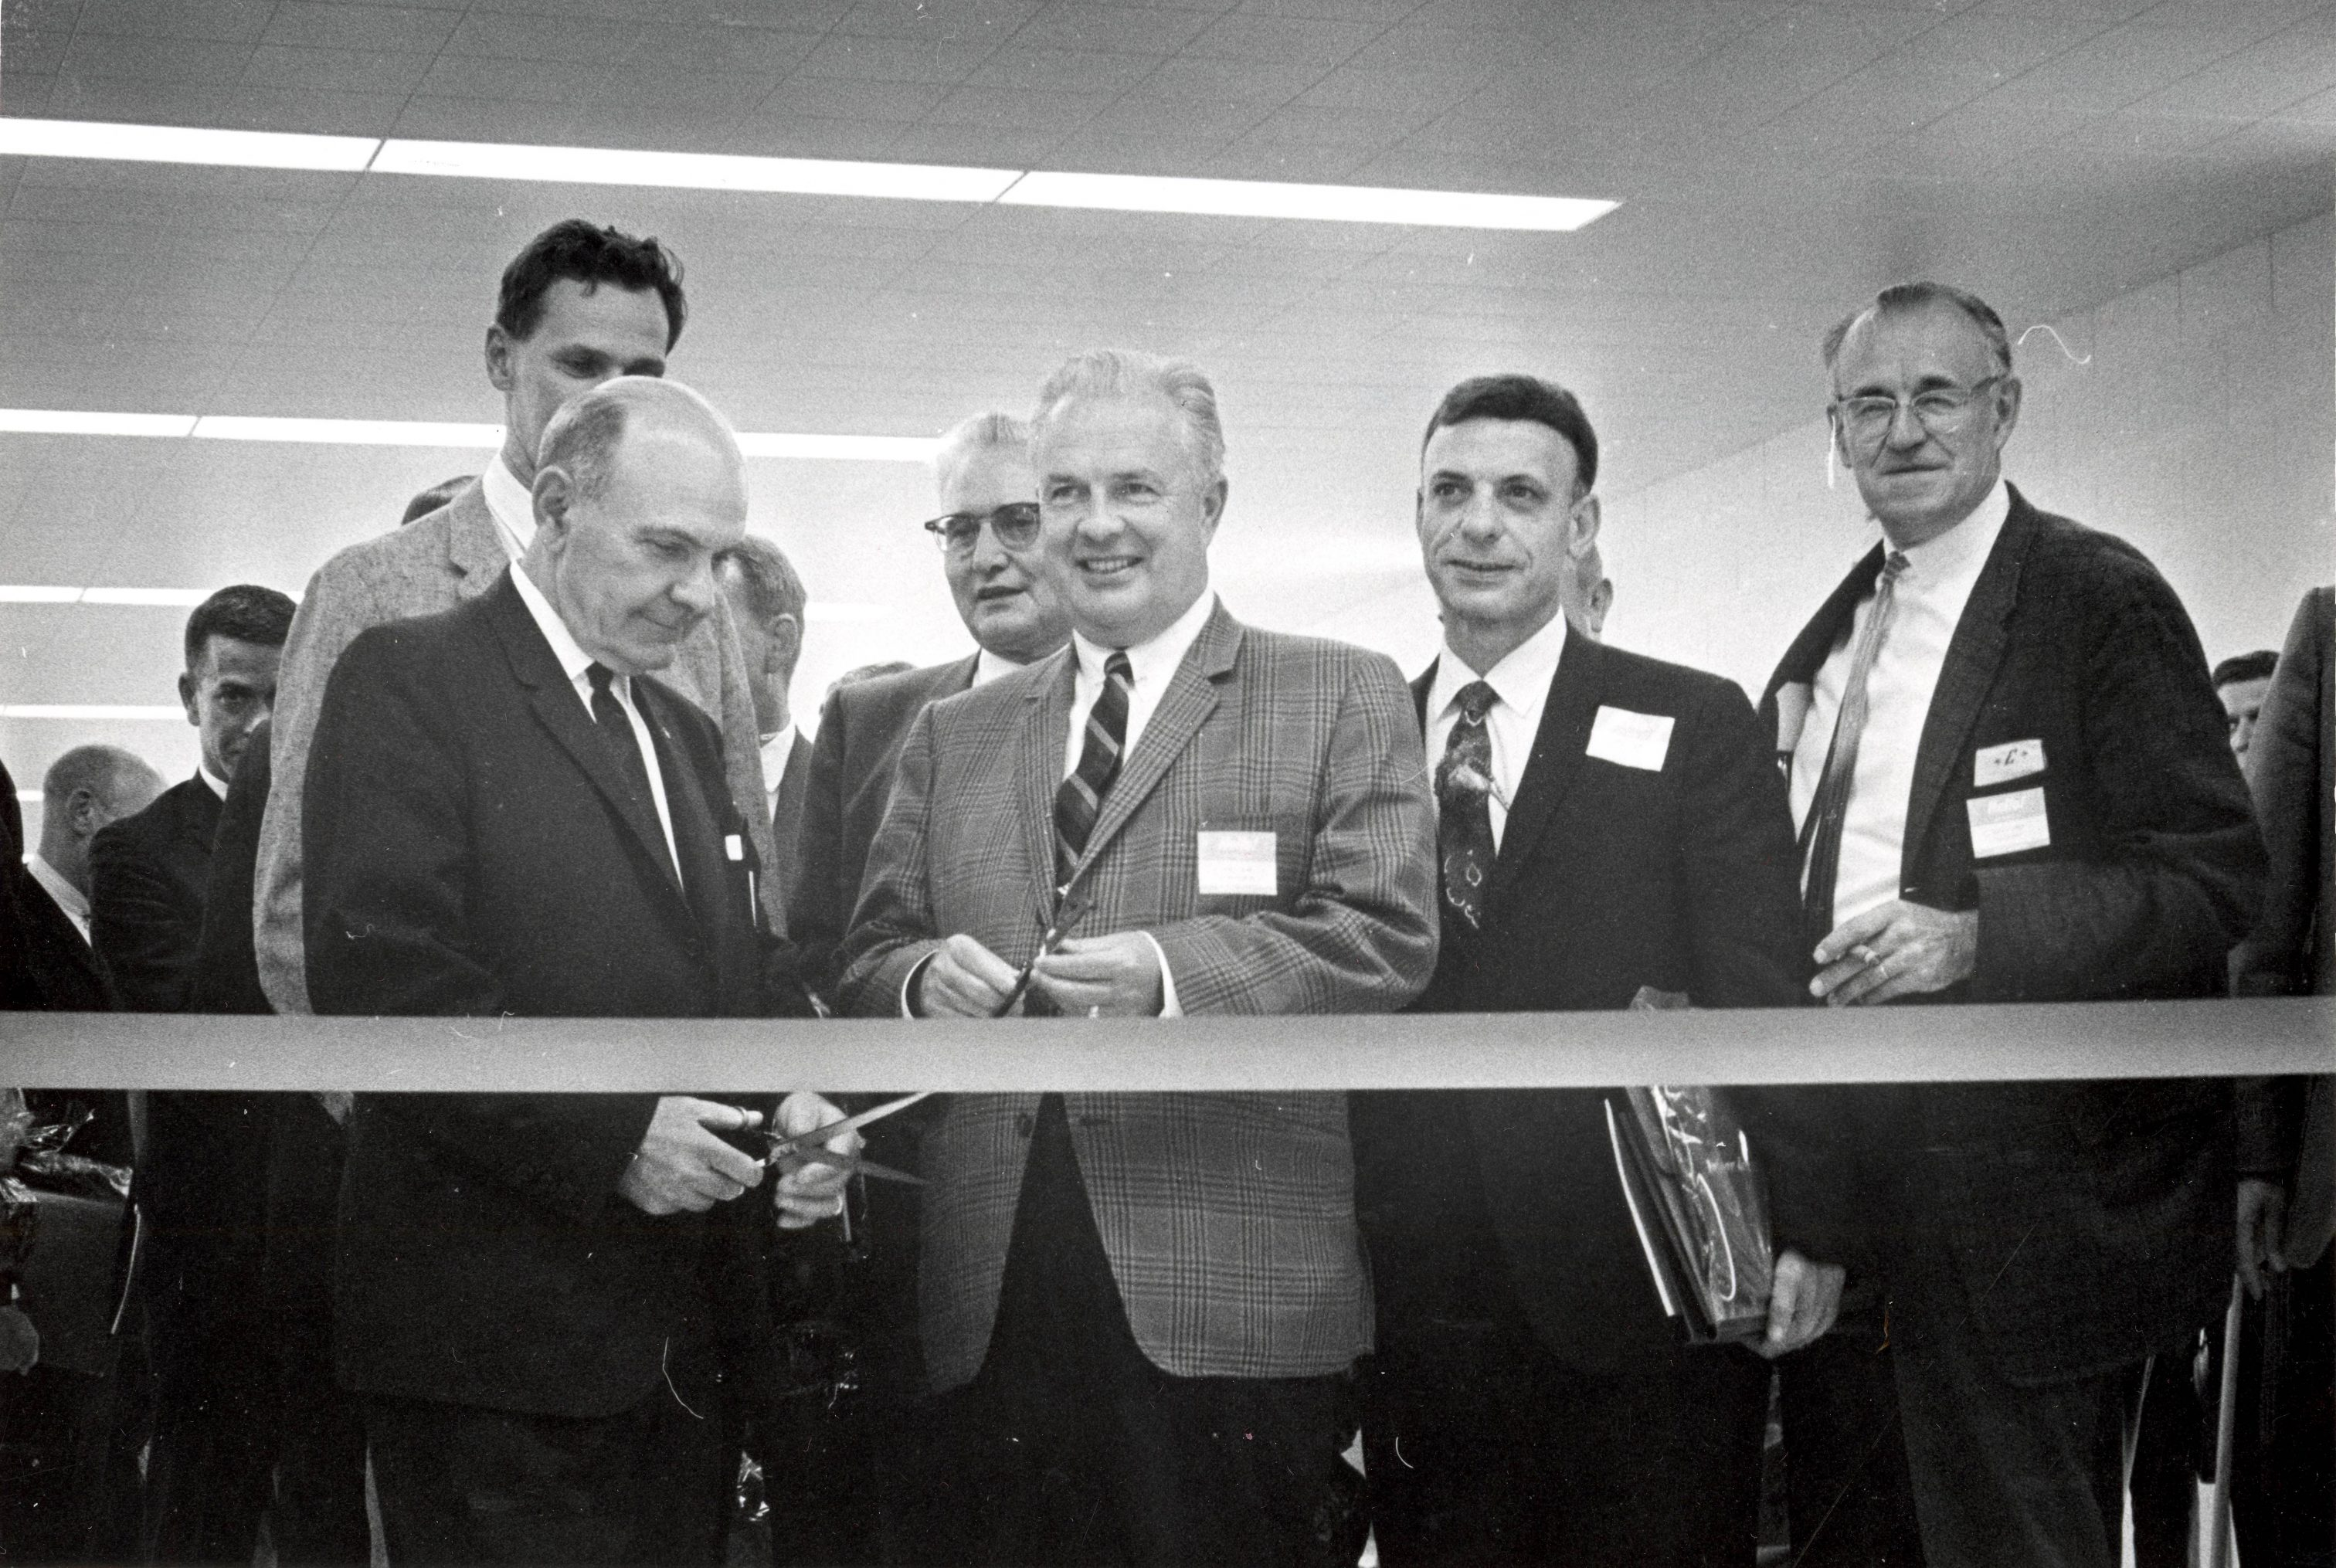 John Doyne (center) was Milwaukee's first county executive, elected in 1960. He is pictured here in 1967 at a ribbon-cutting ceremony at General Mitchell International Airport.